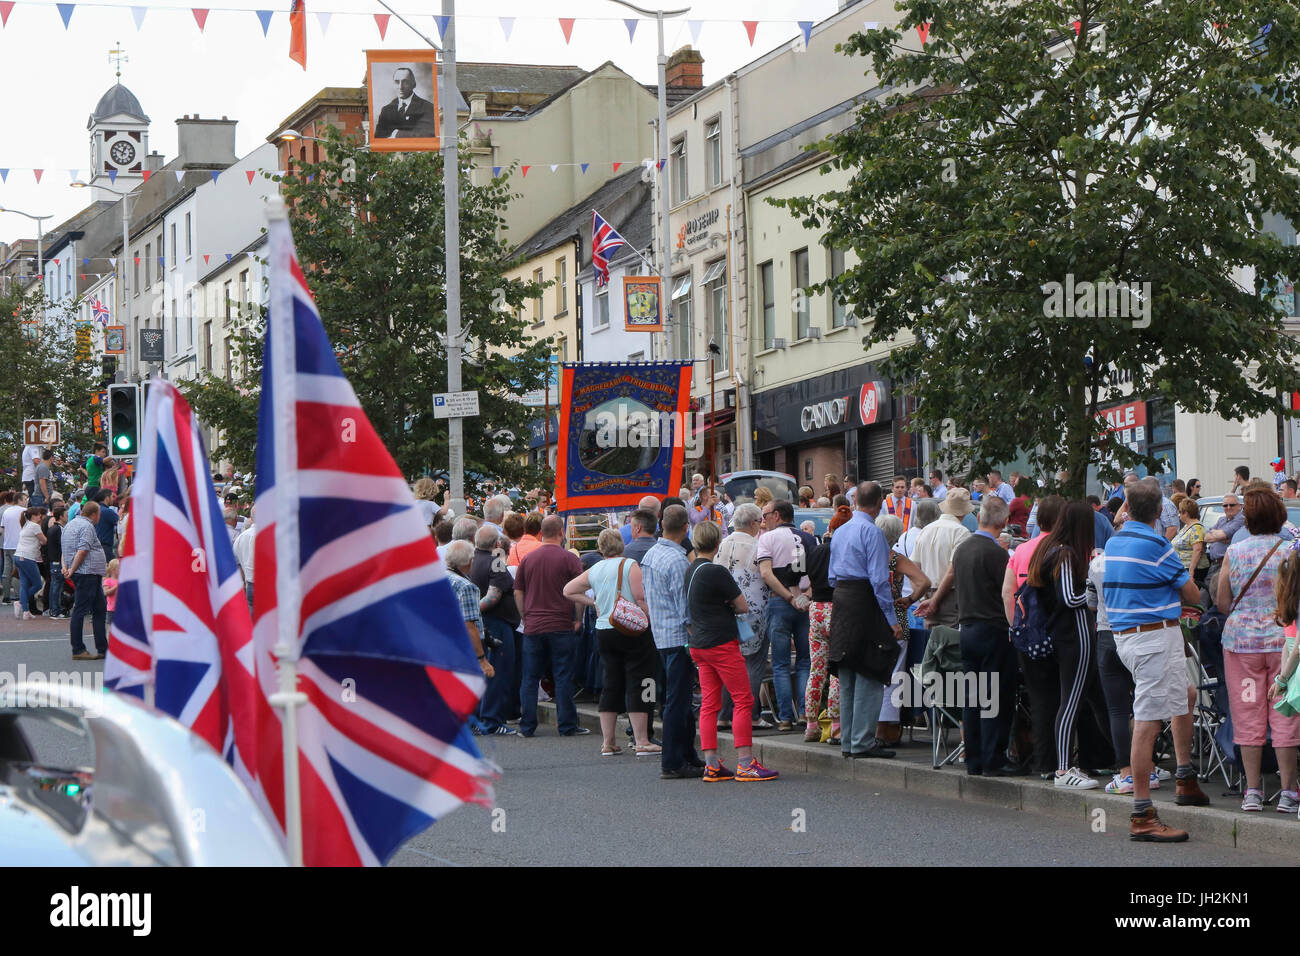 Banbridge, County Down, Northern Ireland. 12th July 2017. The Twelfth of July was marked by this Orange Order Parade - Stock Image